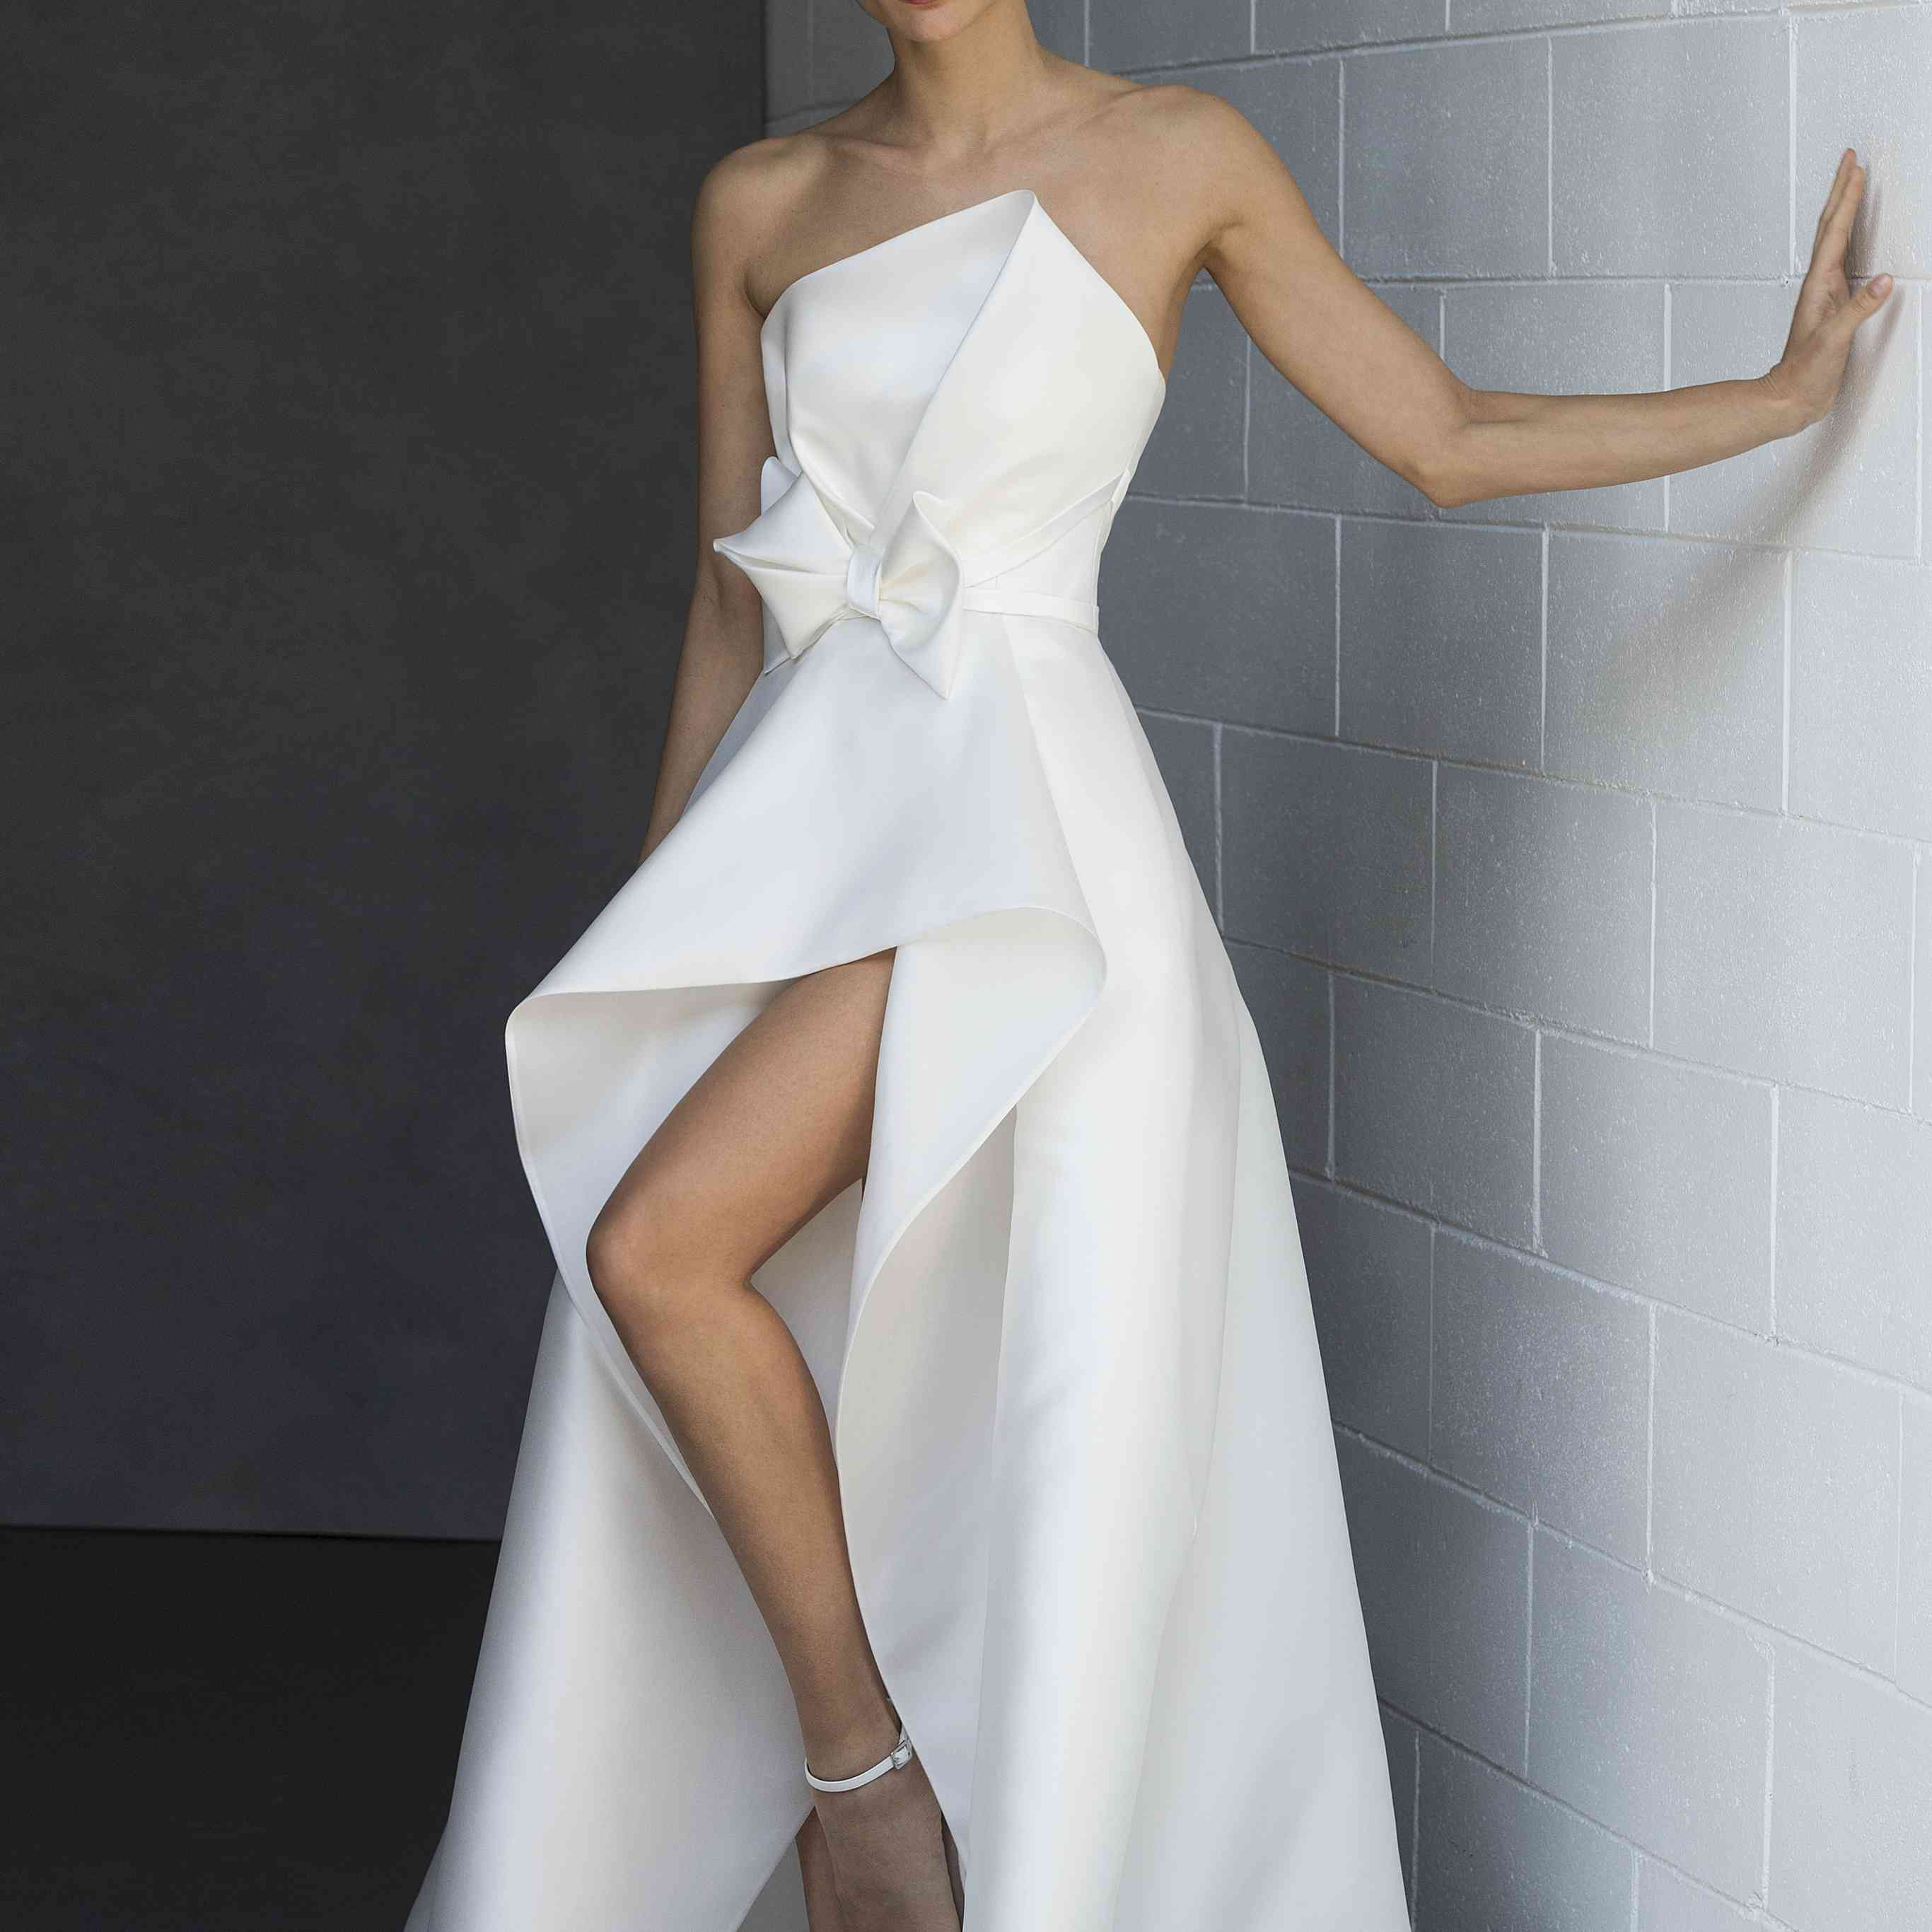 Model in strapless high-low gown with bow detail at the waist